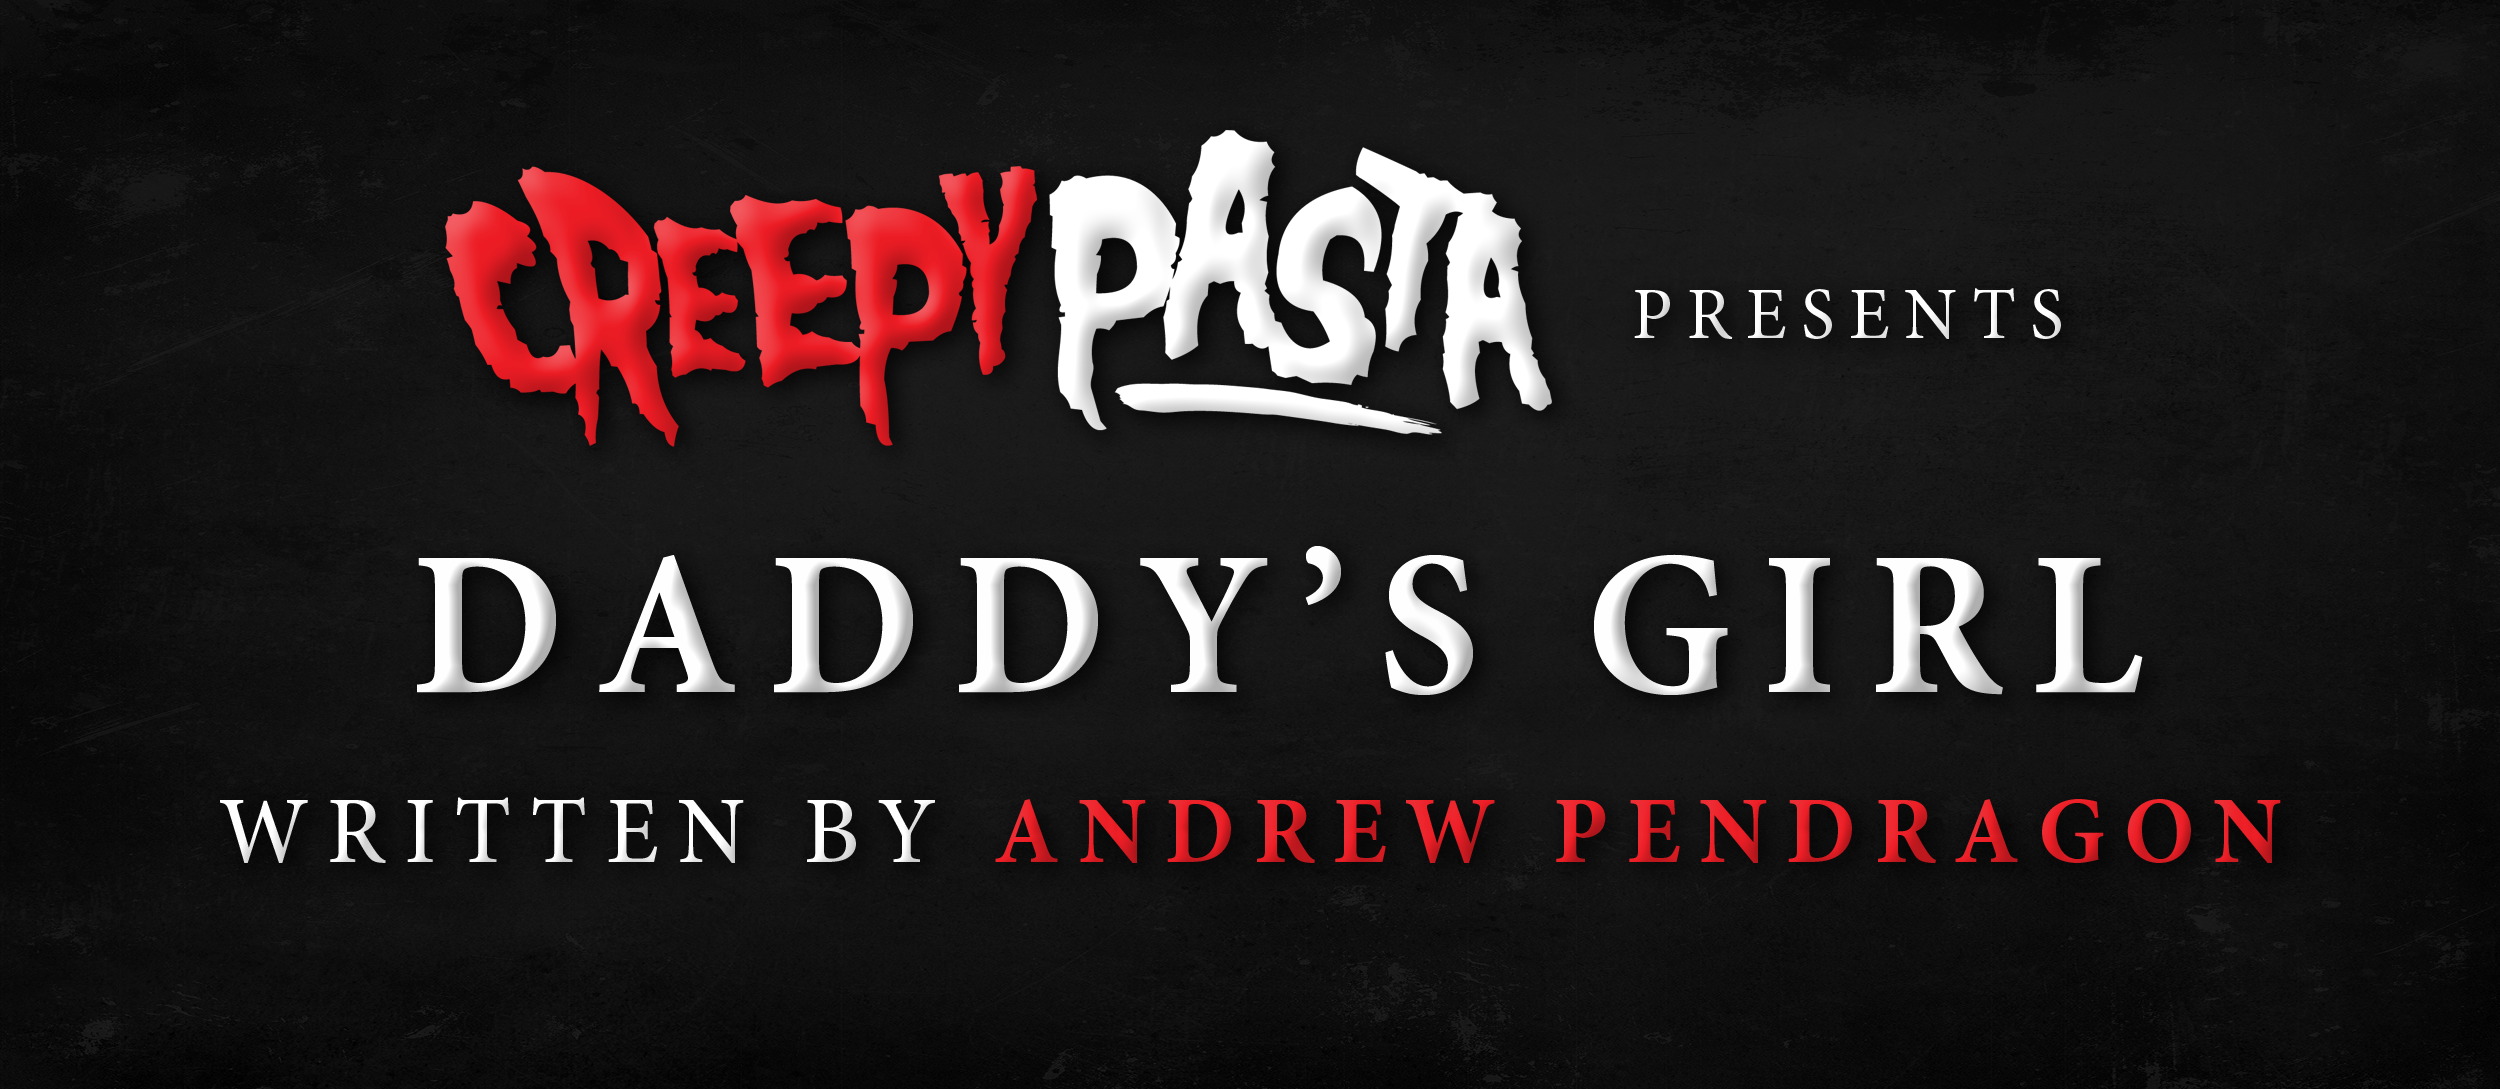 Daddys Girl Creepypasta